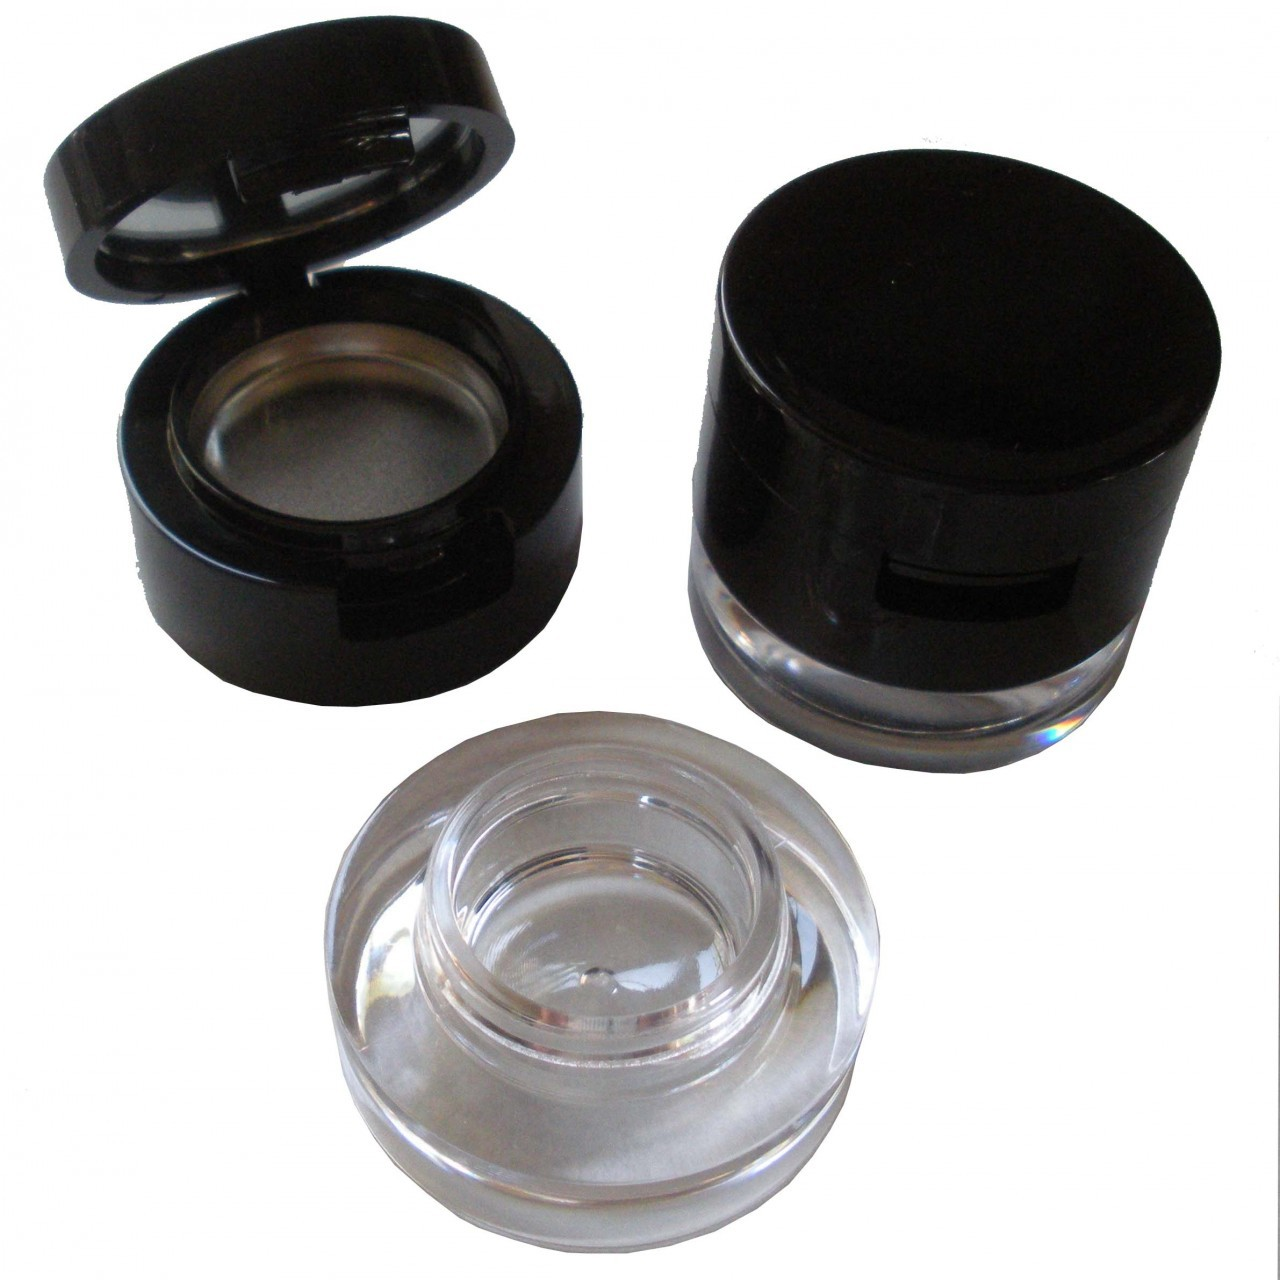 Round Shiny Duo Cavity Jar 26mm